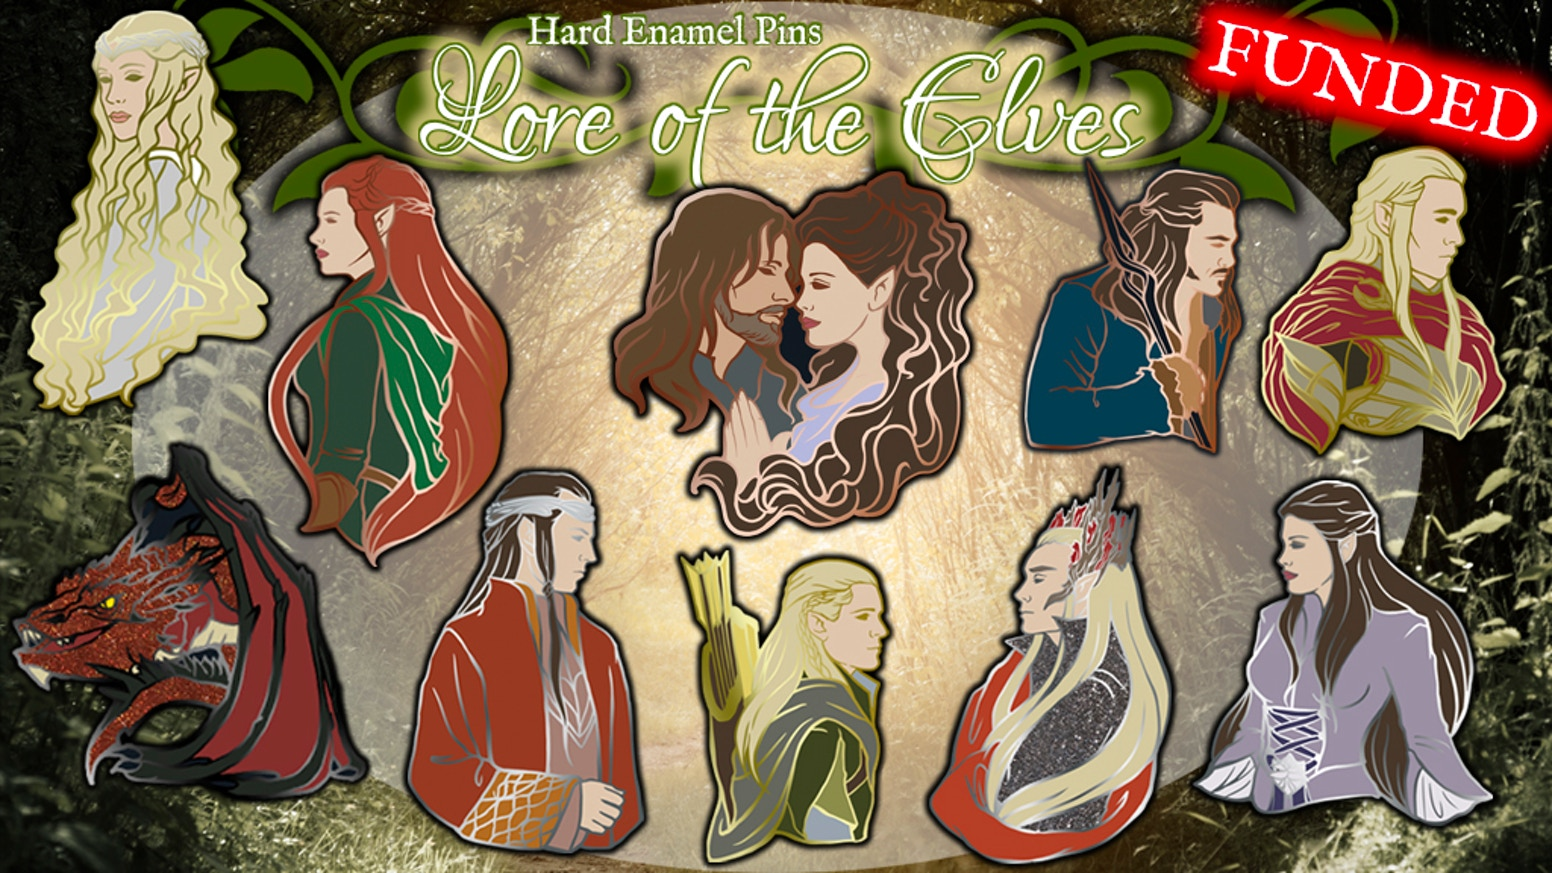 Elves of Middle Earth, Lord of the Rings & Hobbit inspired Large Hard Enamel Pins